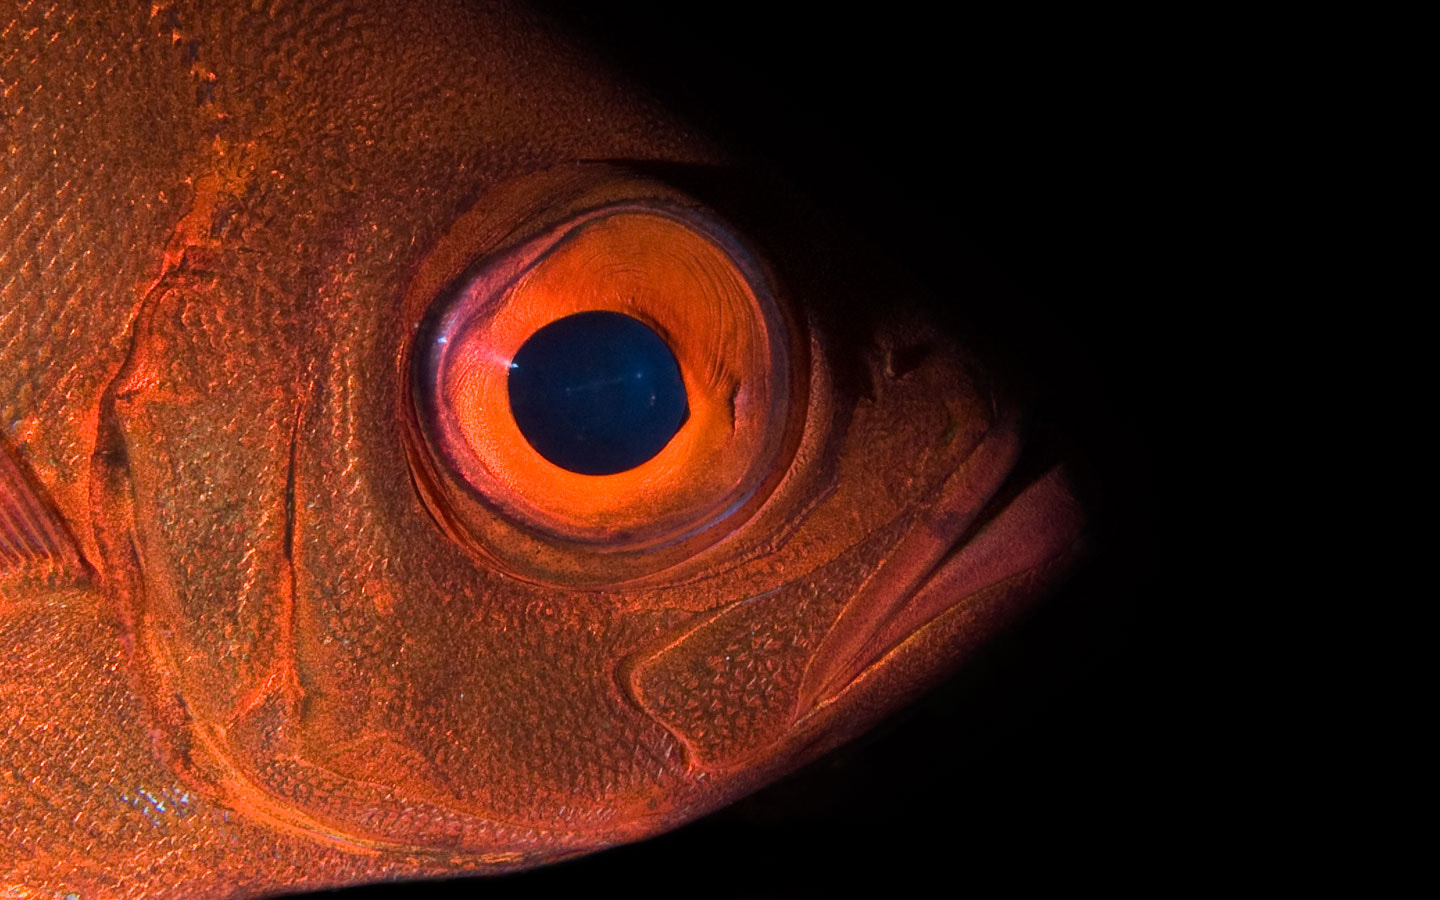 Photograph Big Eye by Dmitry Marchenko on 500px